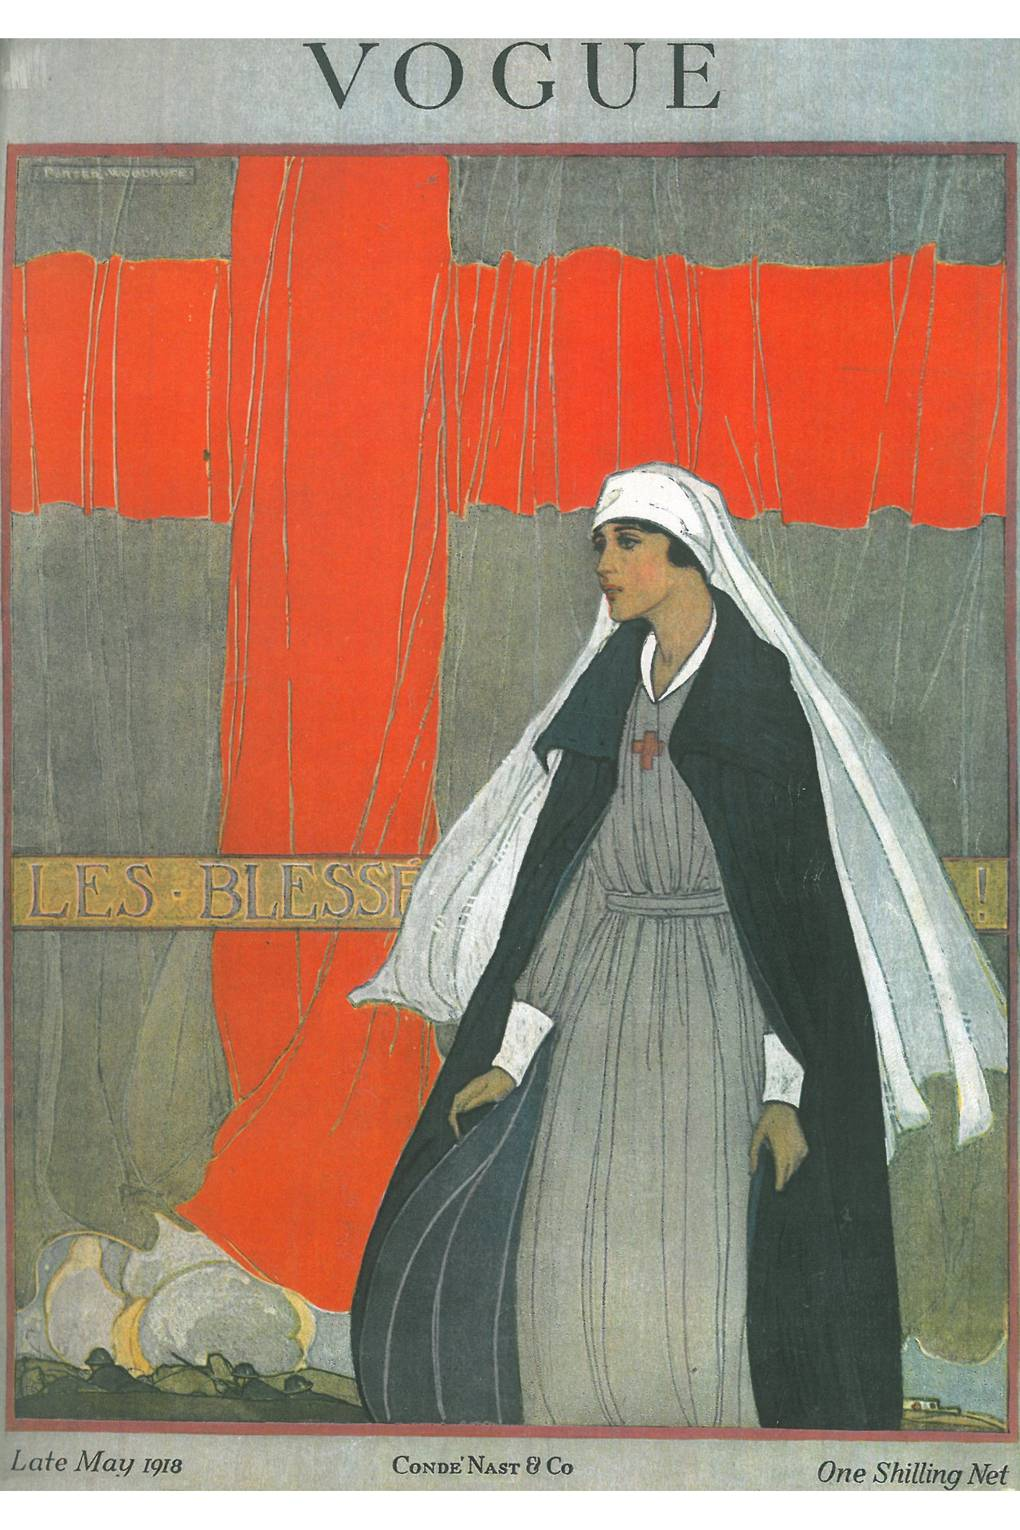 Porter Woodruff illustration on the cover of British Vogue, May 1918